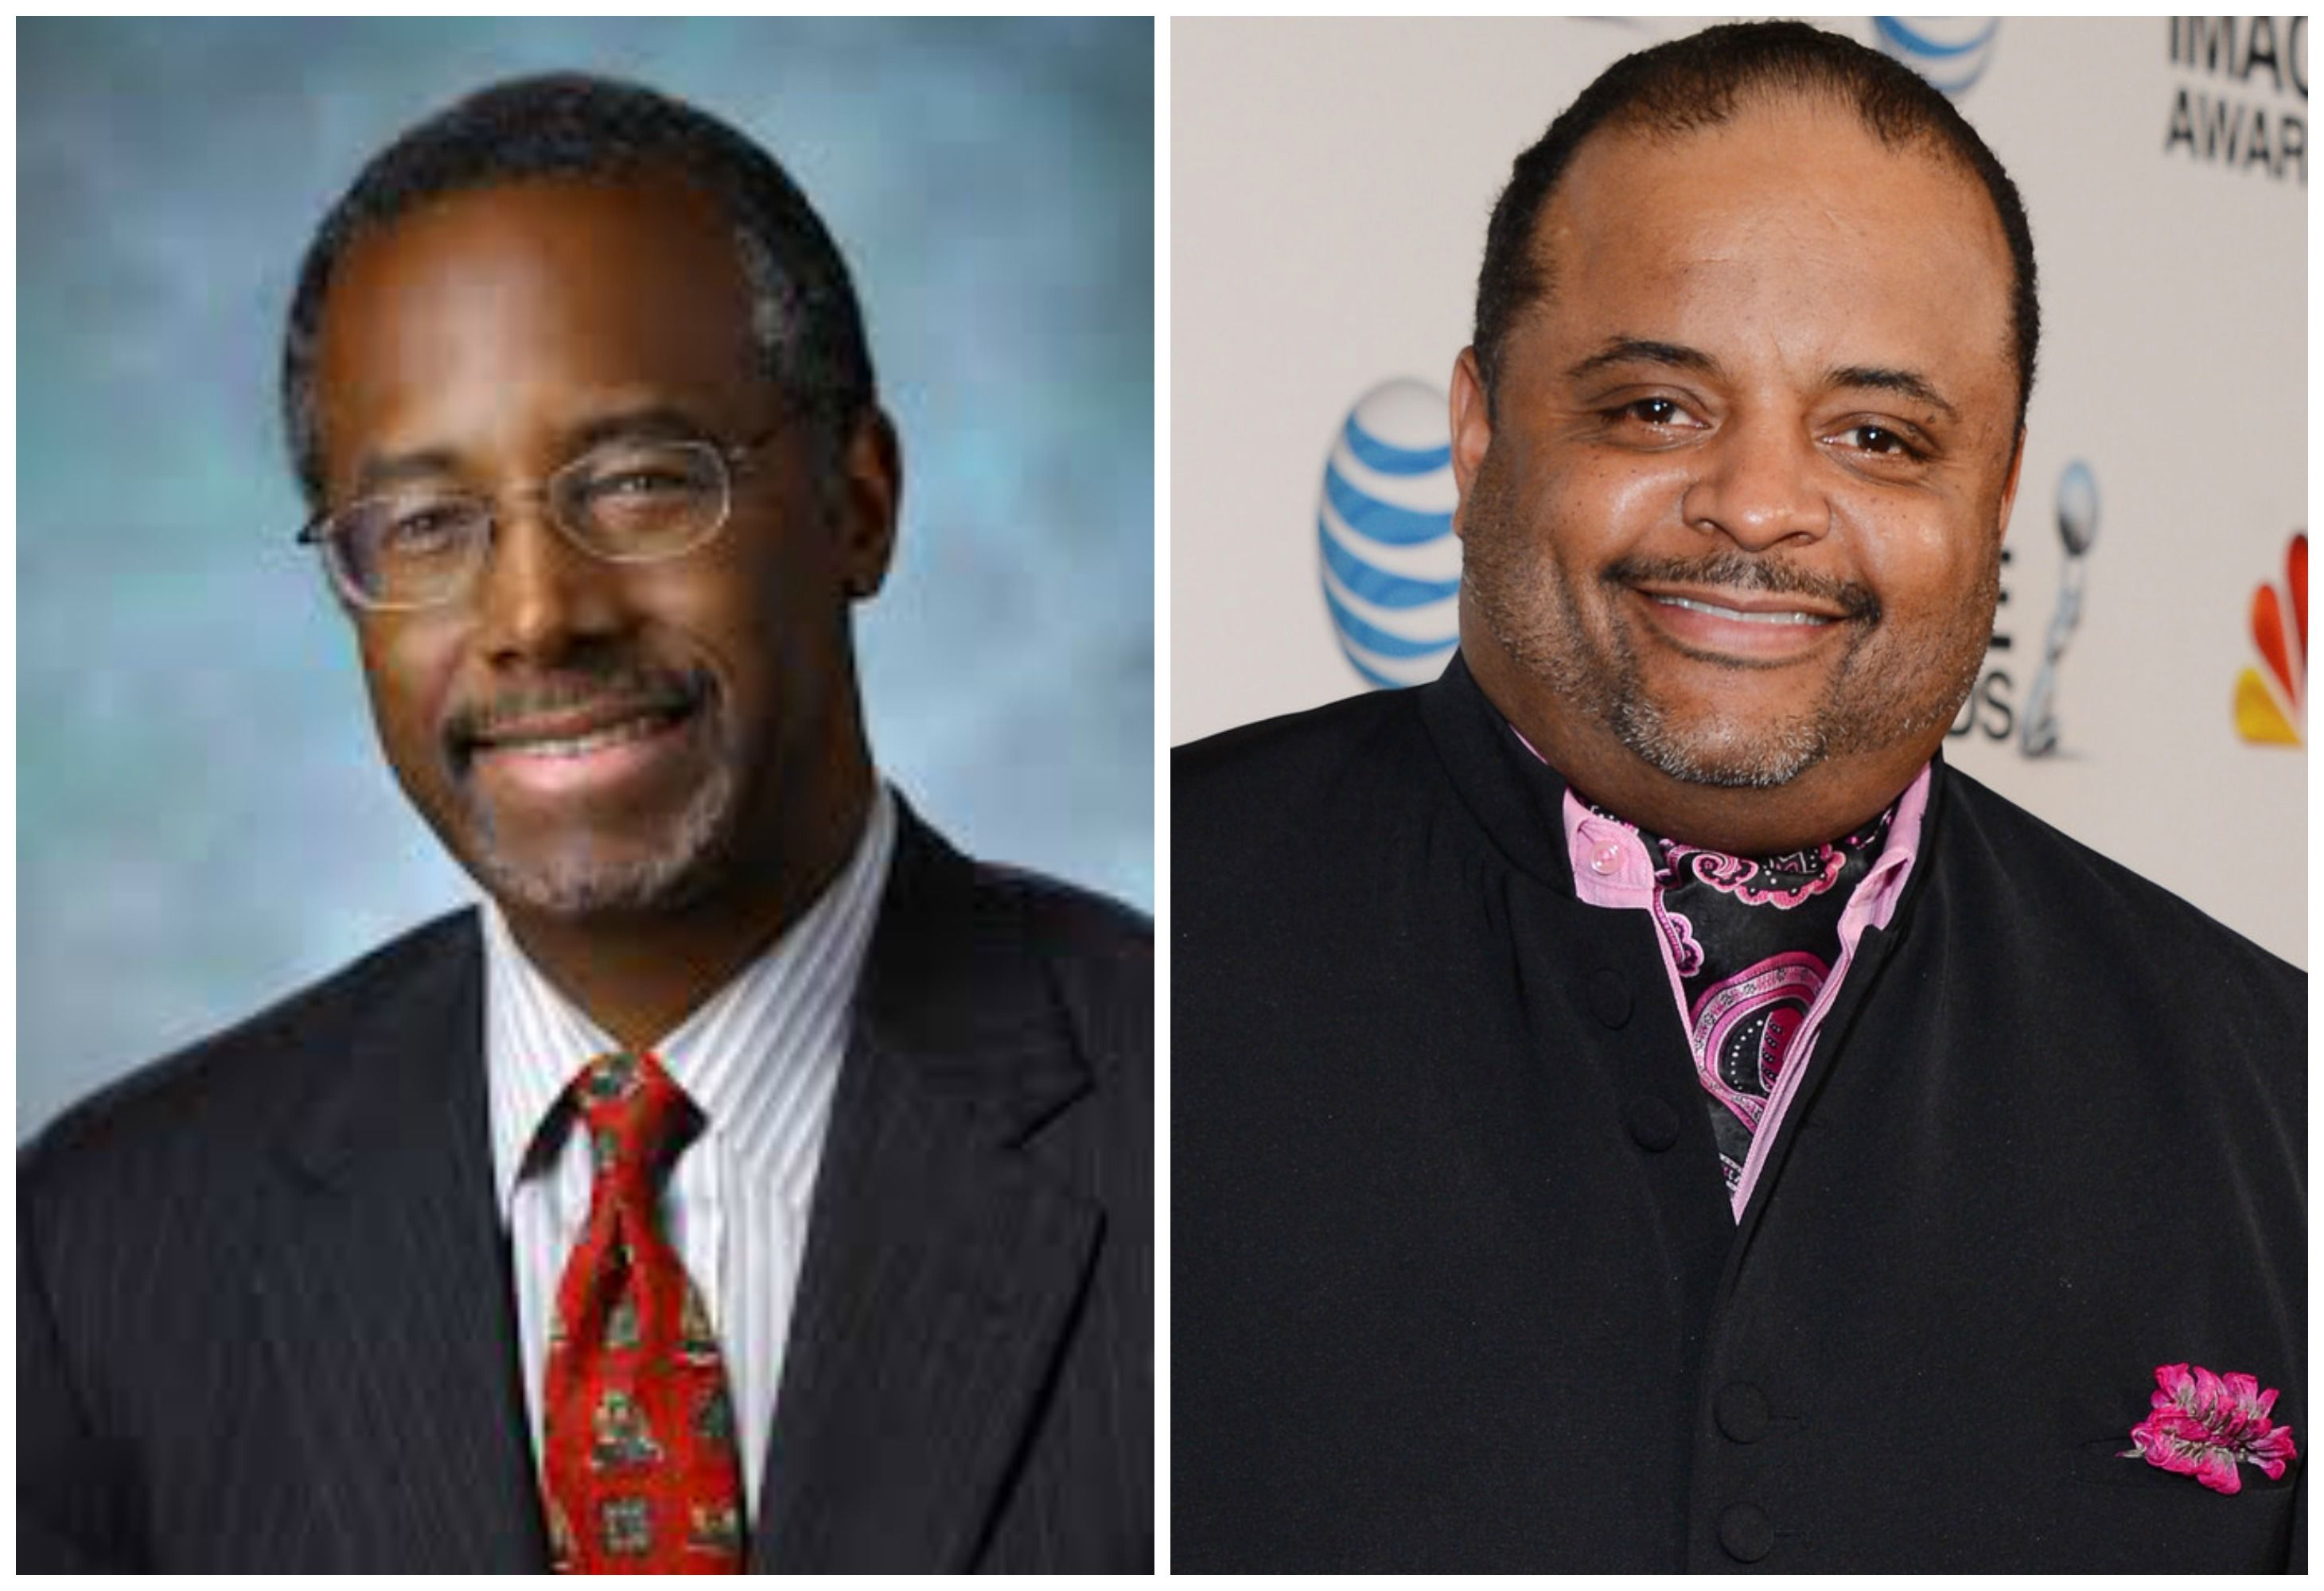 Dr. Ben Carson Explains Why He Believes OBAMACARE 'WORST